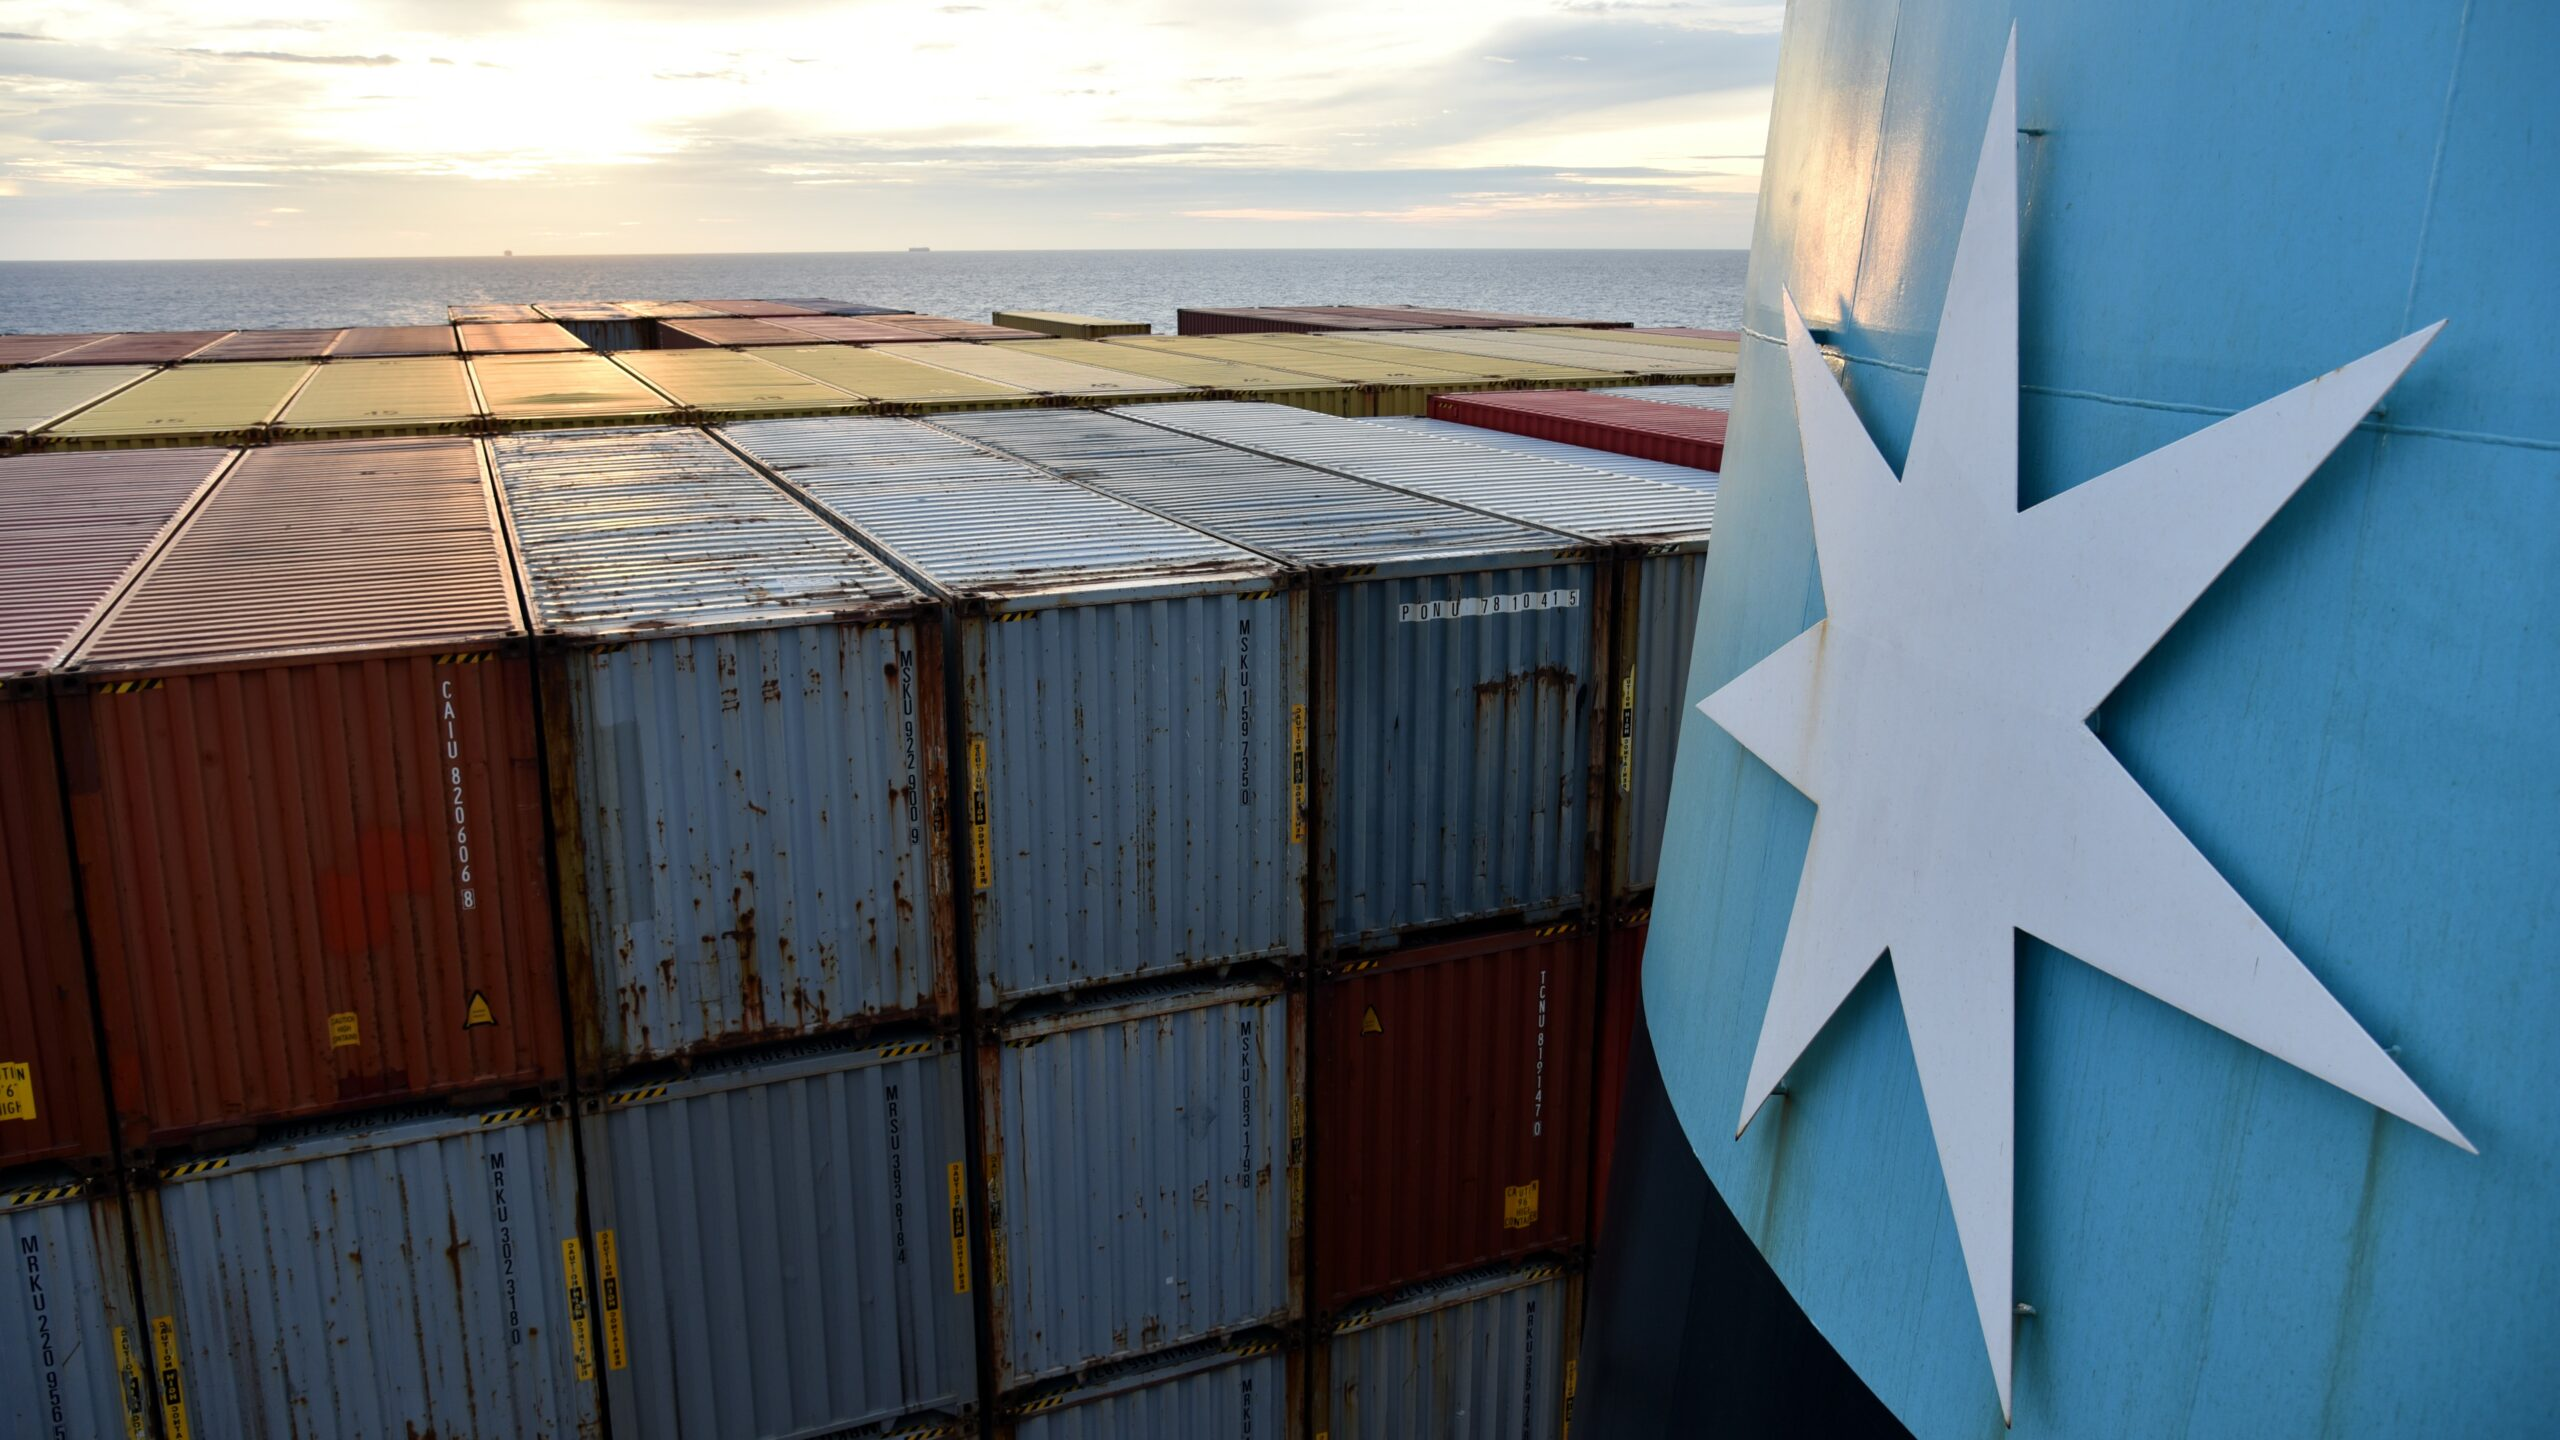 Maersk expects to double its free cash flow position in 2021 1